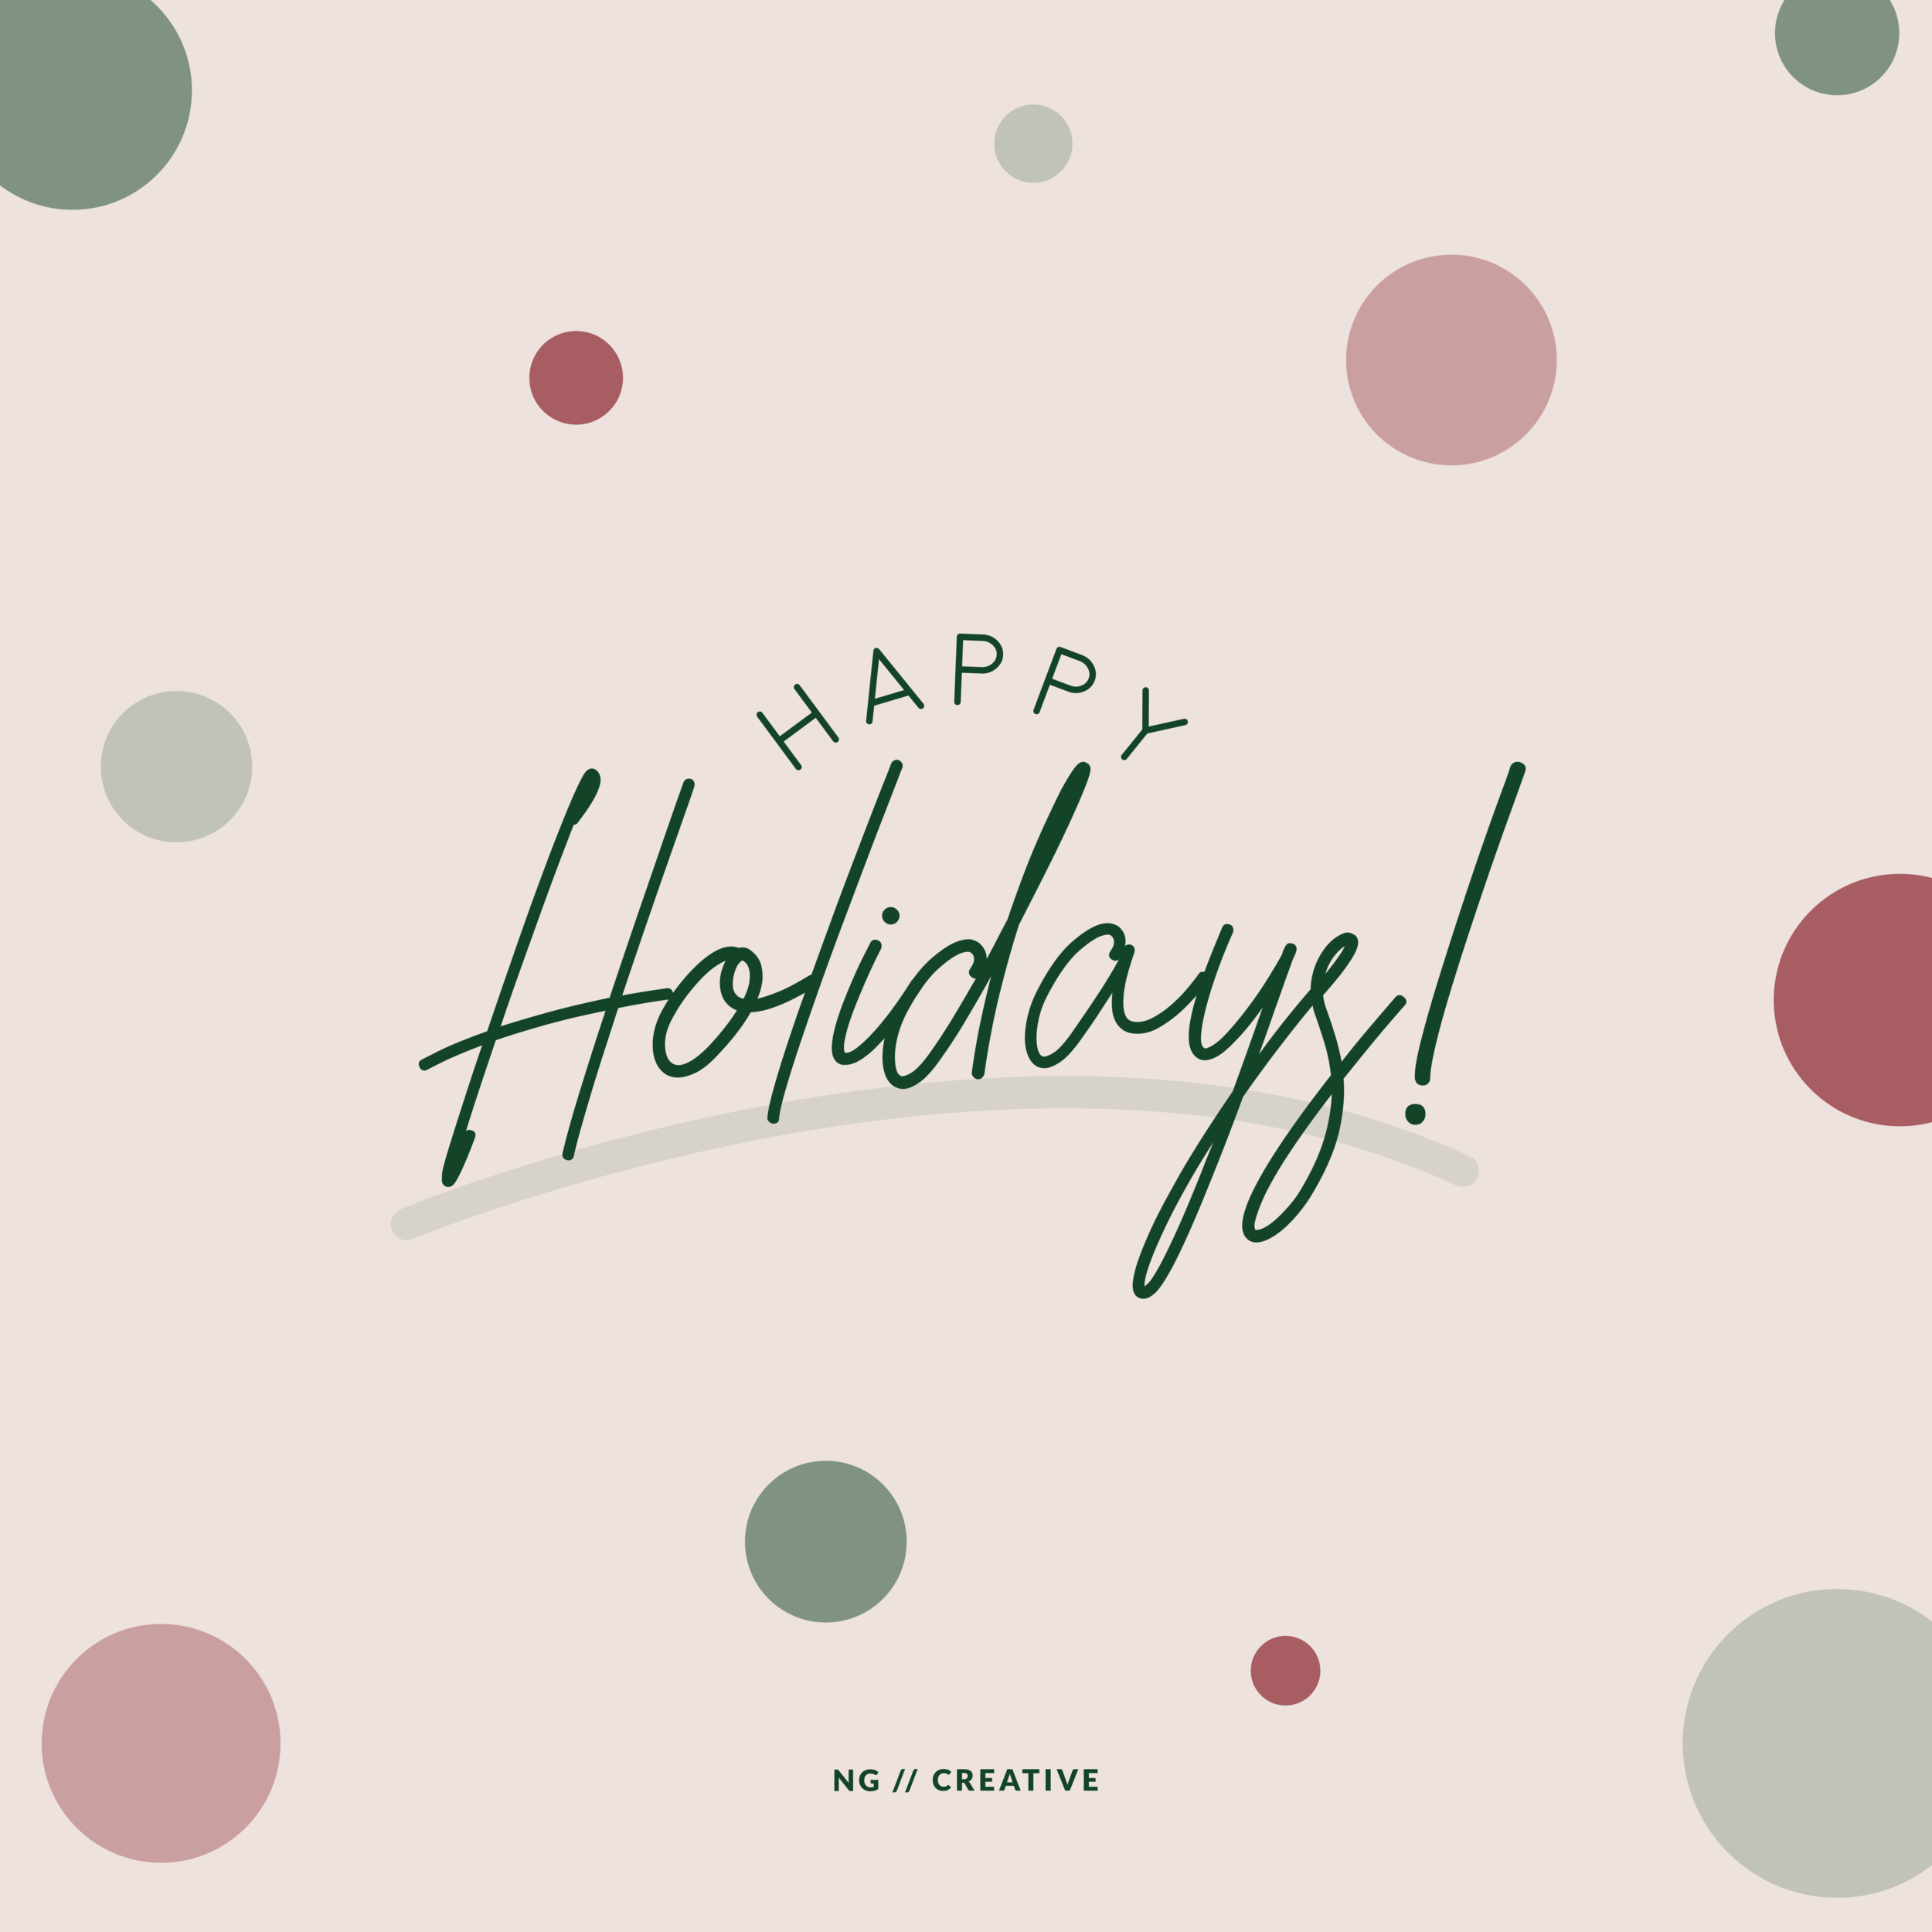 Holiday-IG-01.png